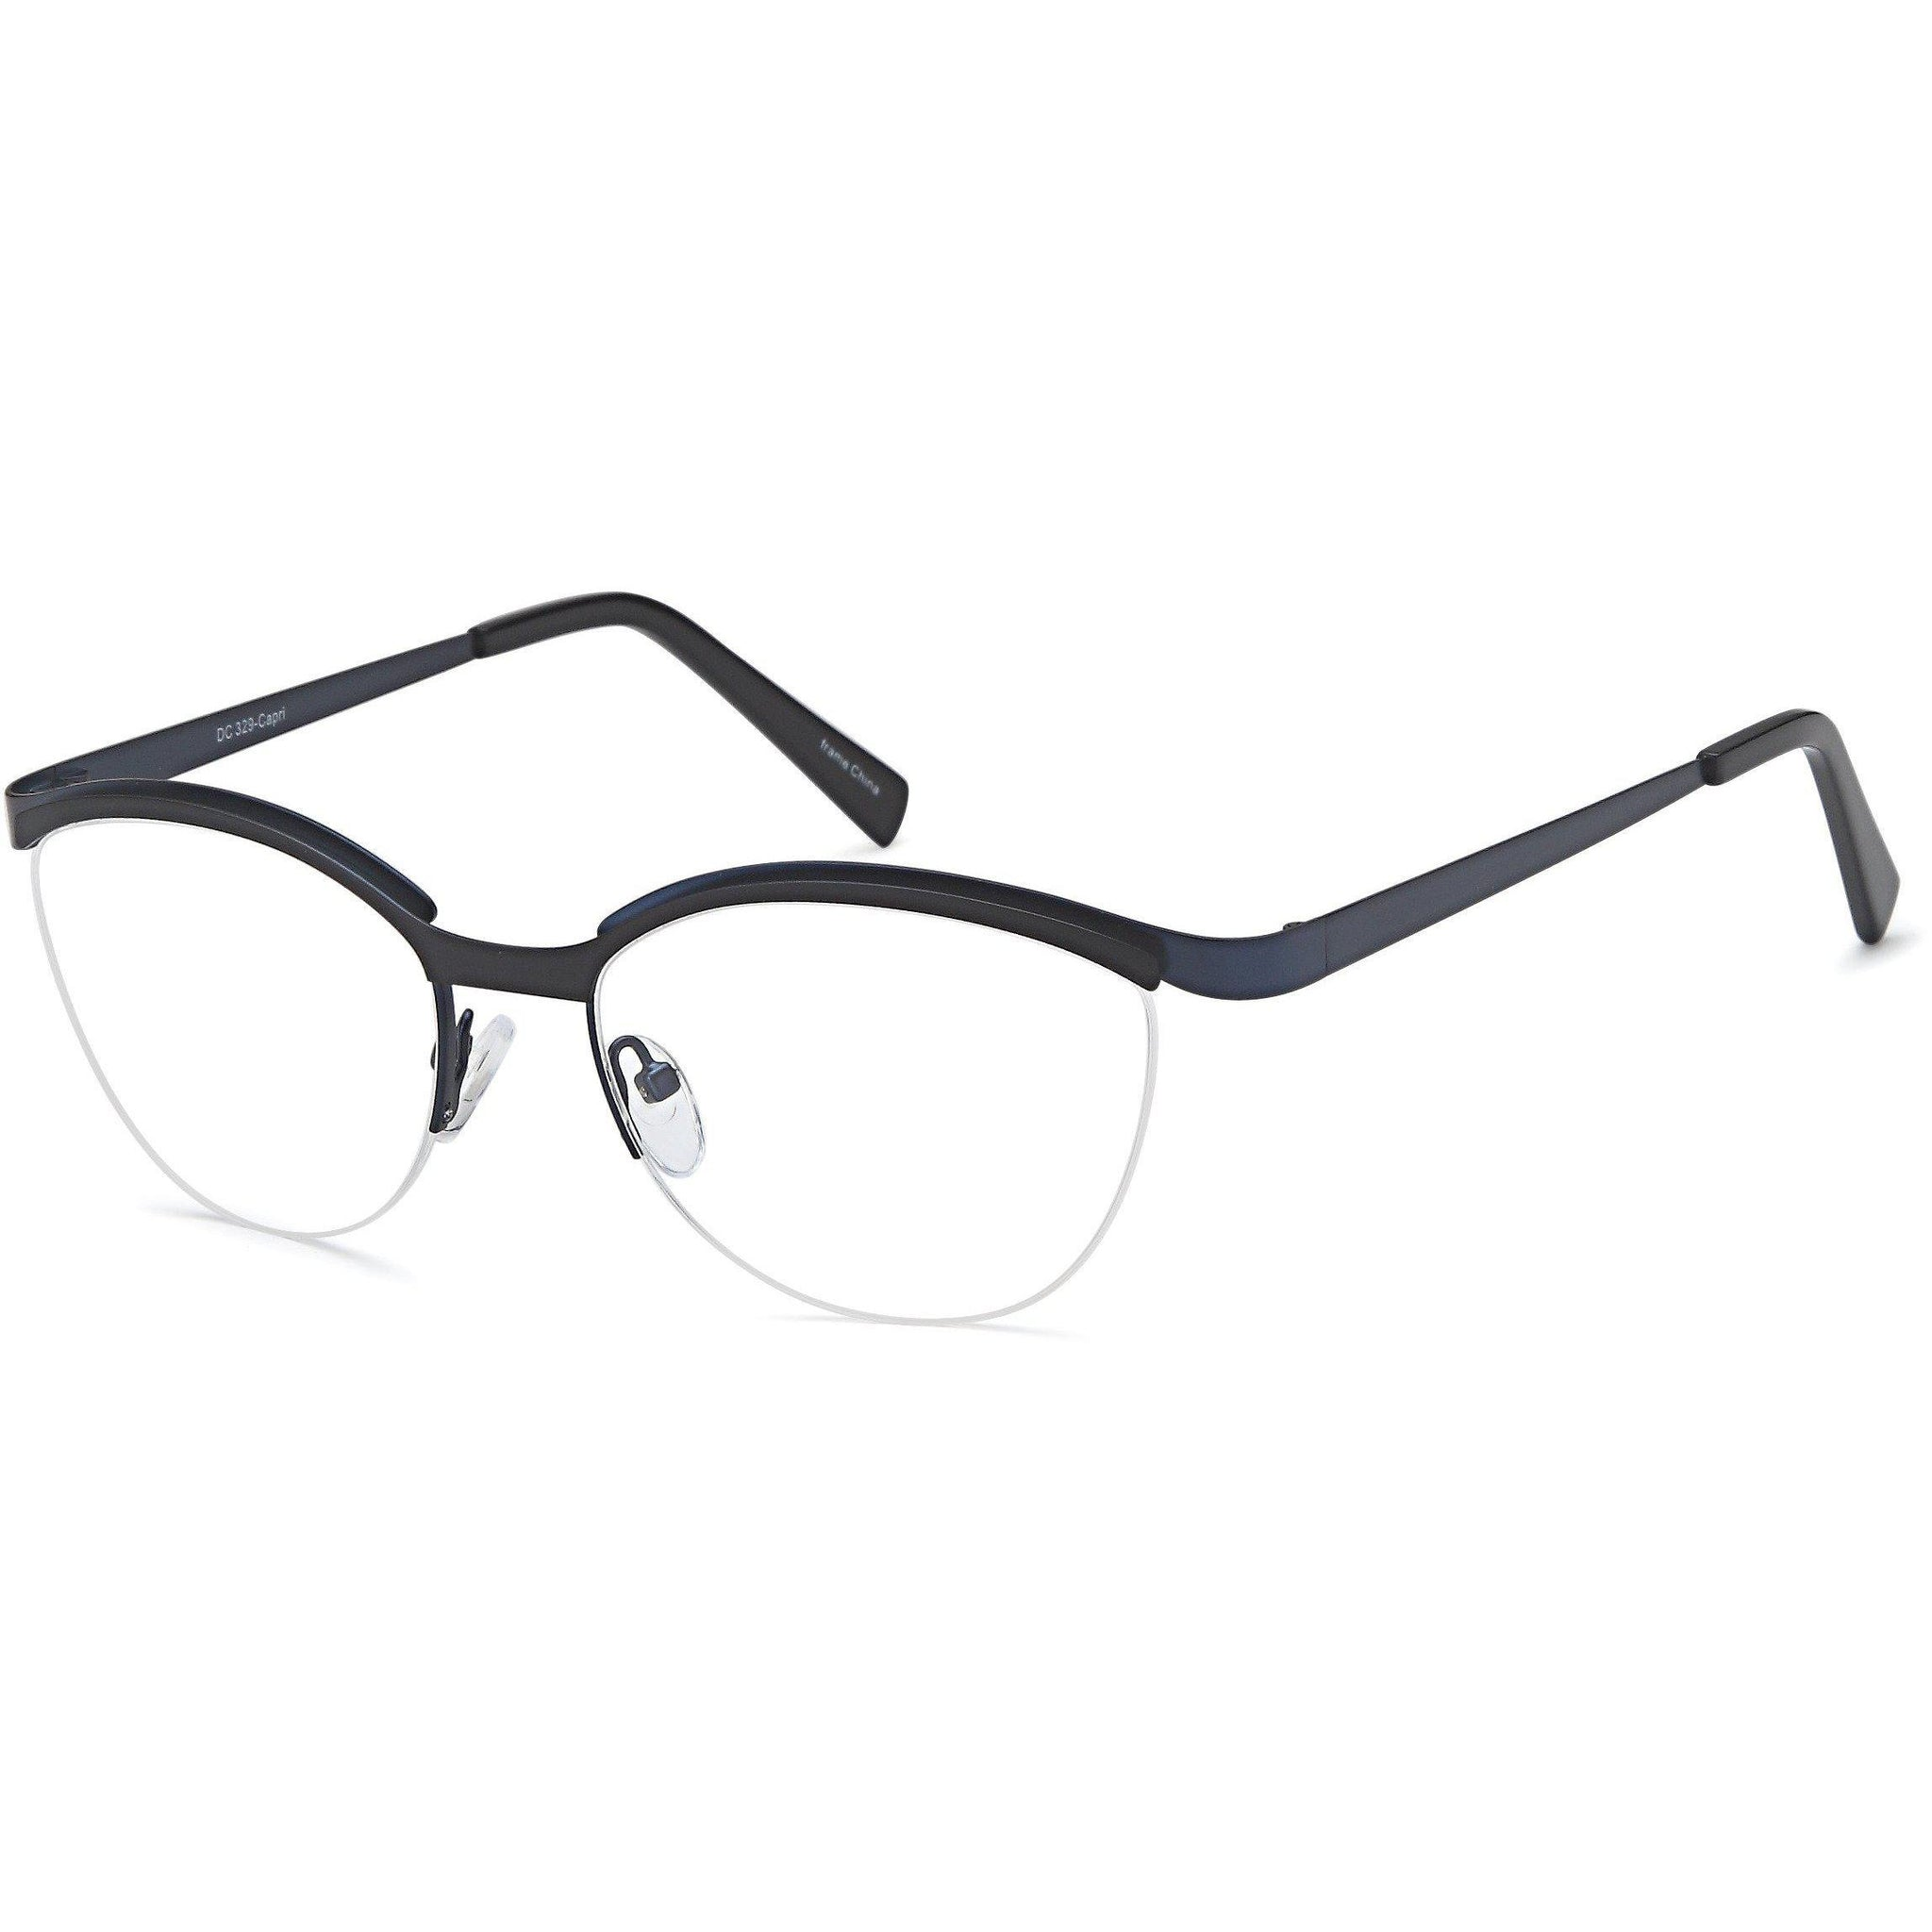 Di Caprio Prescription Glasses DC 329 Eyeglasses Frame - timetoshade